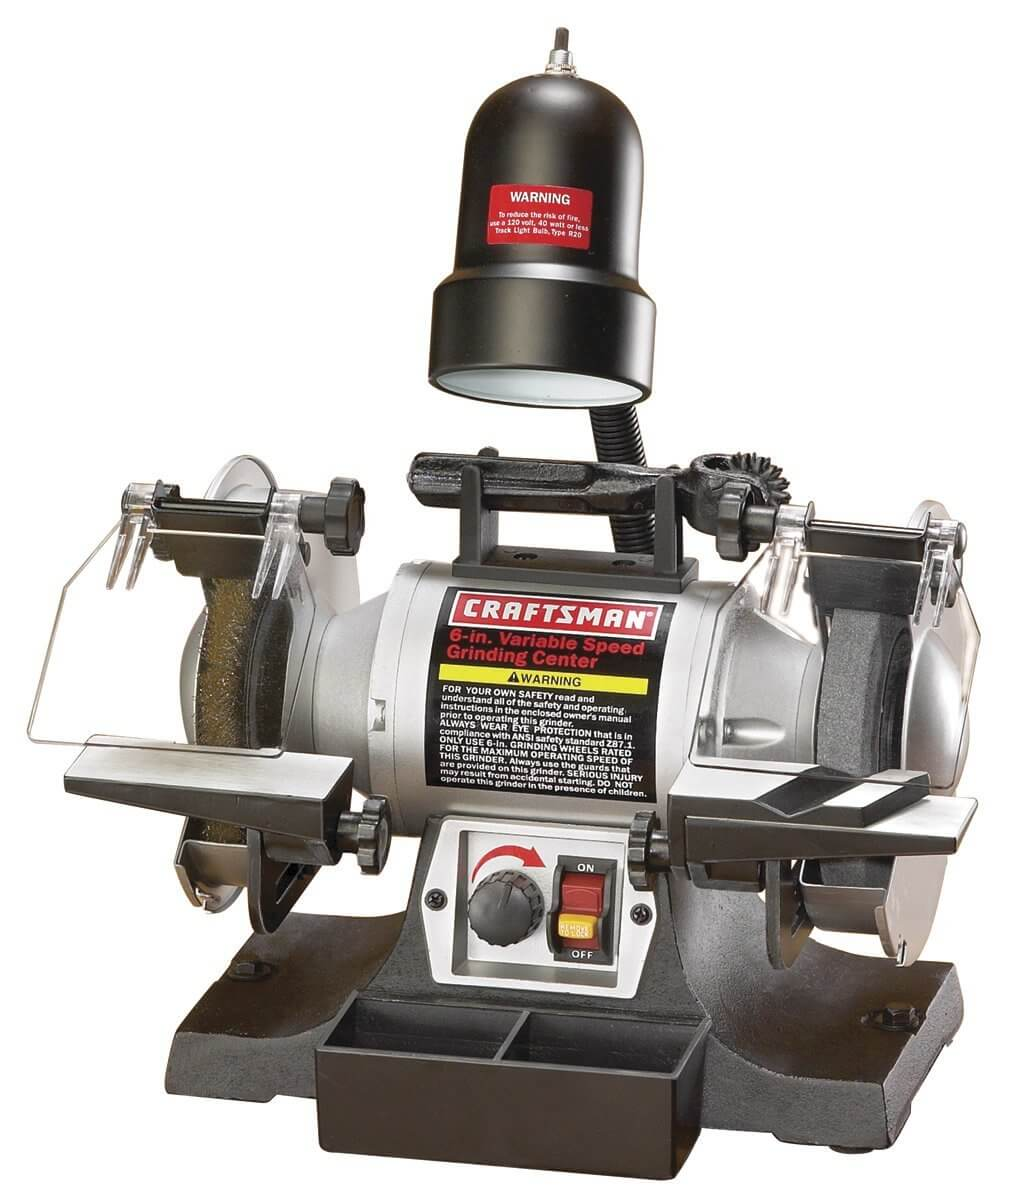 Craftsman 9-21154 Variable Speed 6-Inch Grinding Center